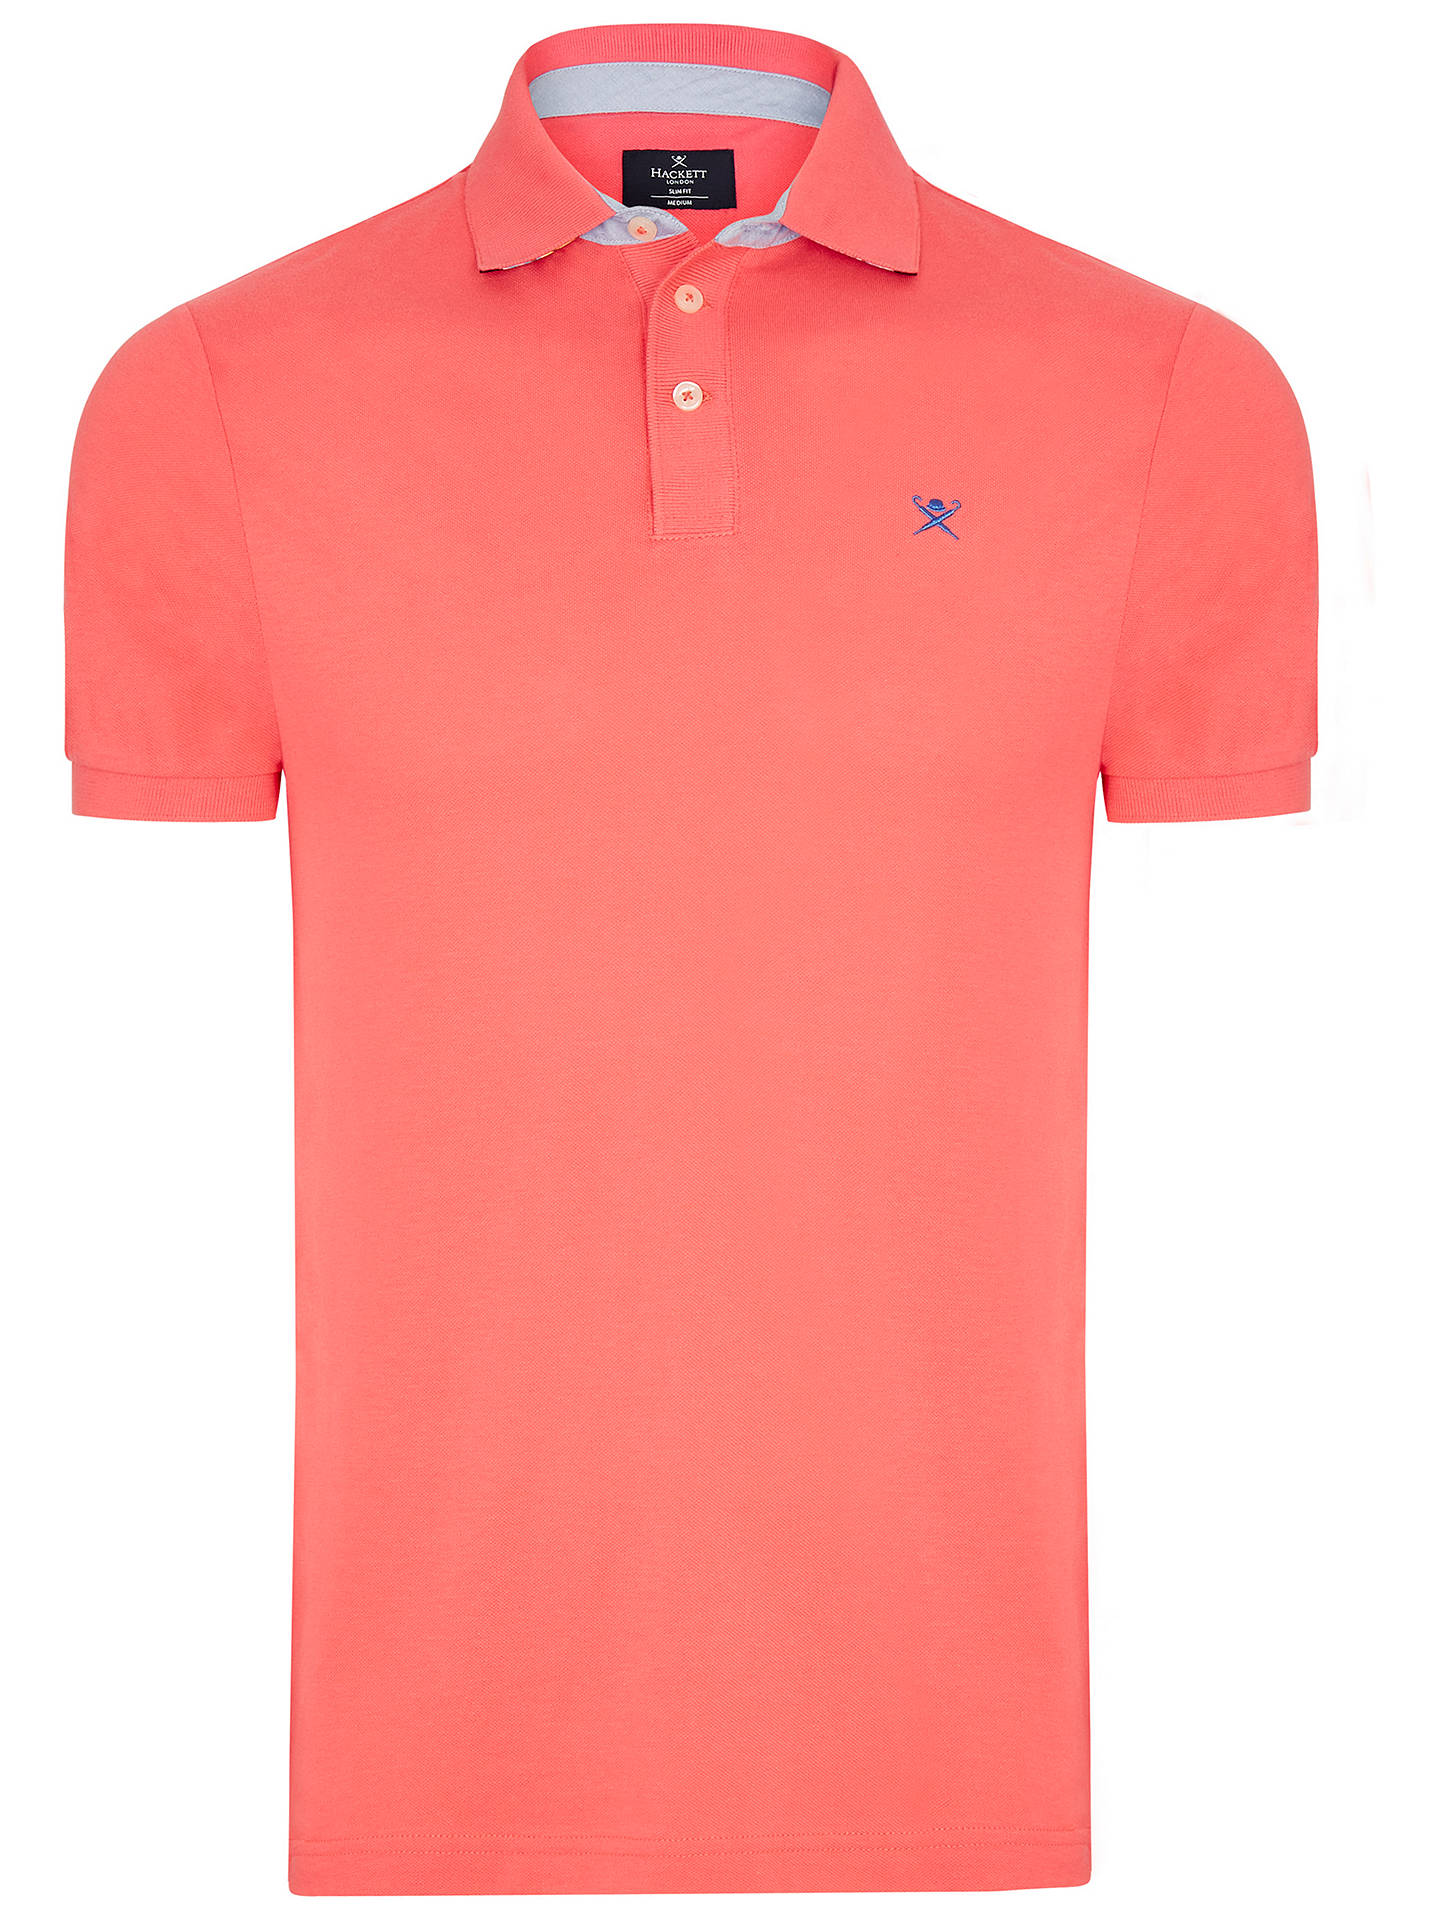 Best Polo T Shirt Brand - DREAMWORKS